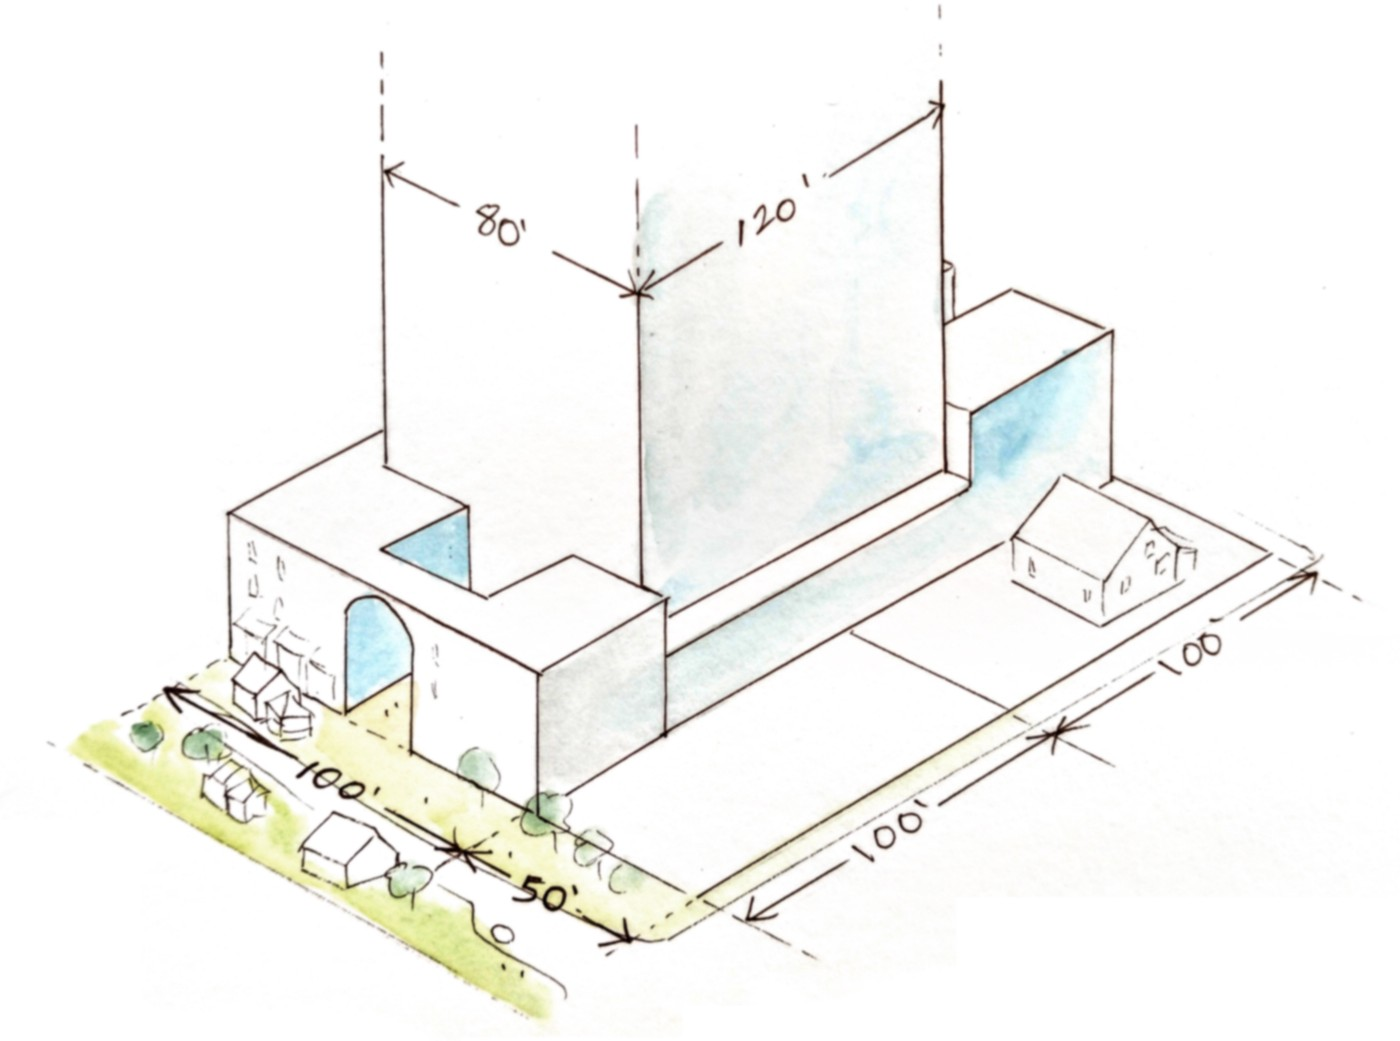 Isometric drawing of a 80'x120' wide tall building built in the middle of a 100'x200' lot. There is a street in front with a landscaped plaza and tiny houses and driveway